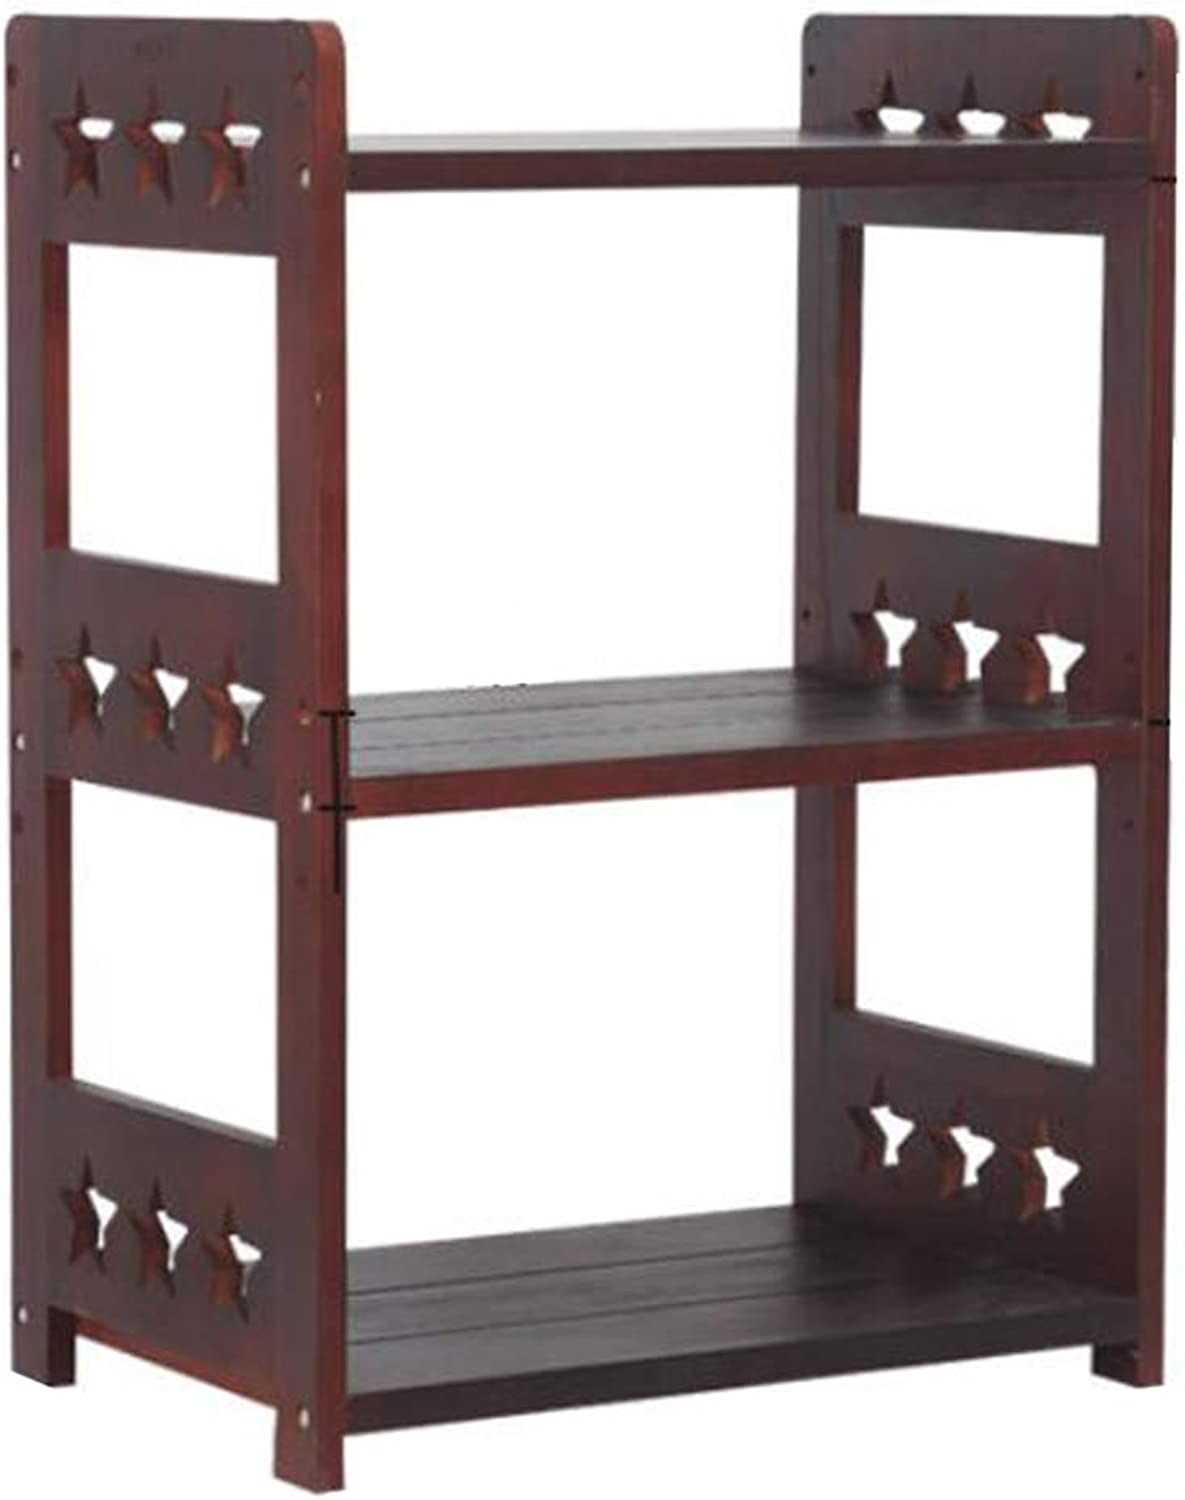 FLYSXP Tree-Shaped Solid Wood Bookshelf Bedroom Small Bookcase Multi-Layer Living Room Office Storage Shelf Book Stand (Size   7 Tiers)